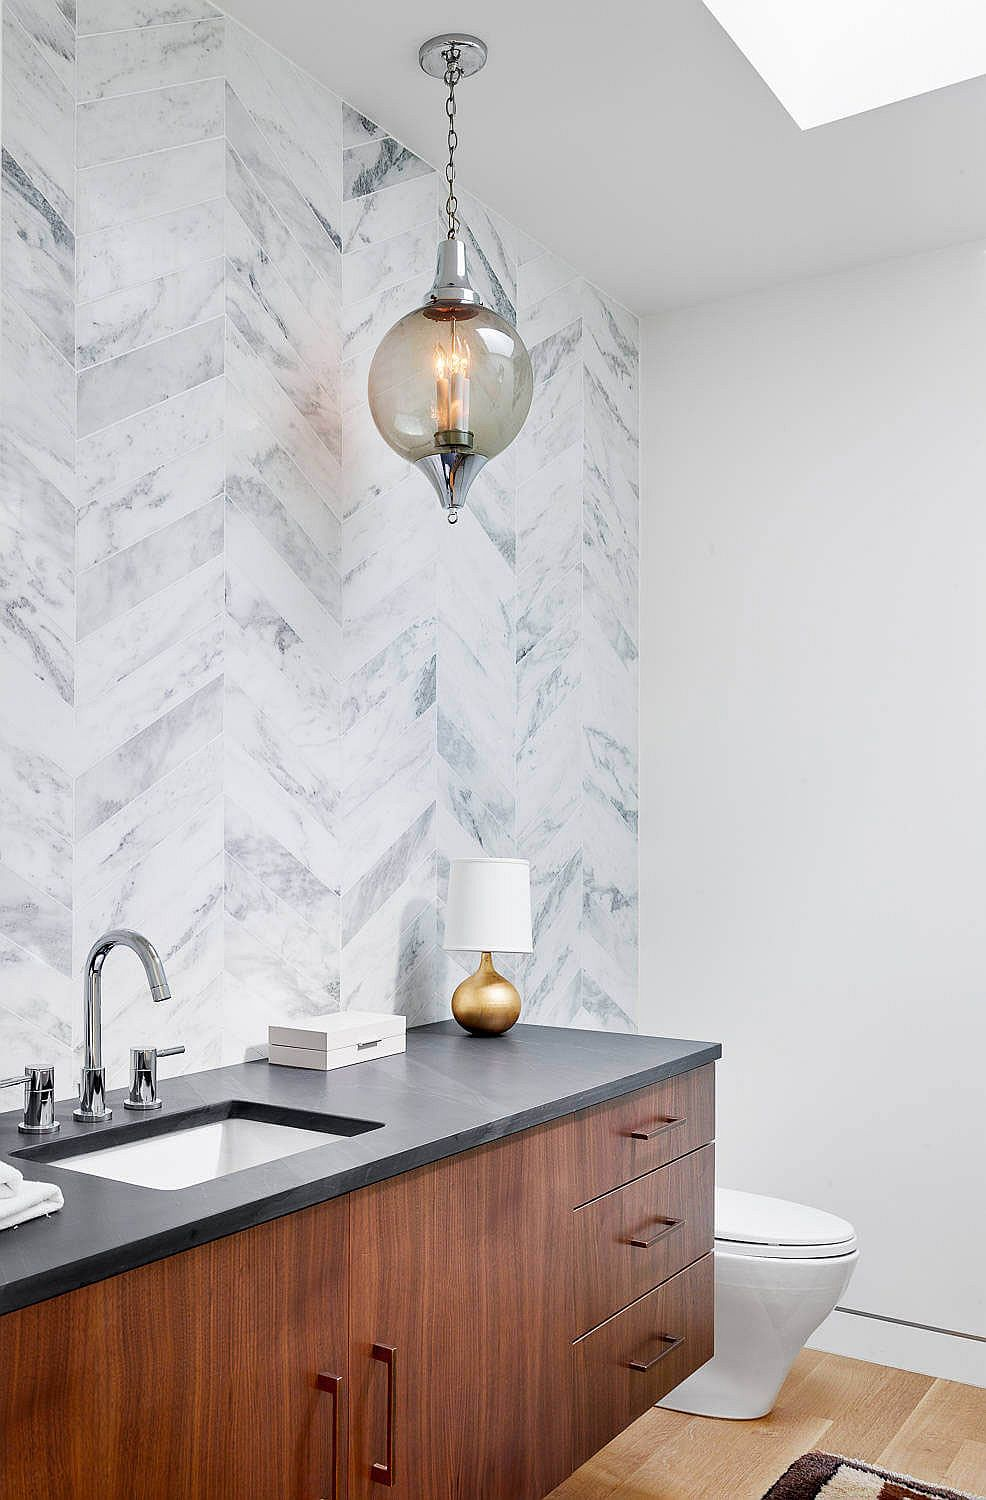 Marble-clad contemporary bathroom in white